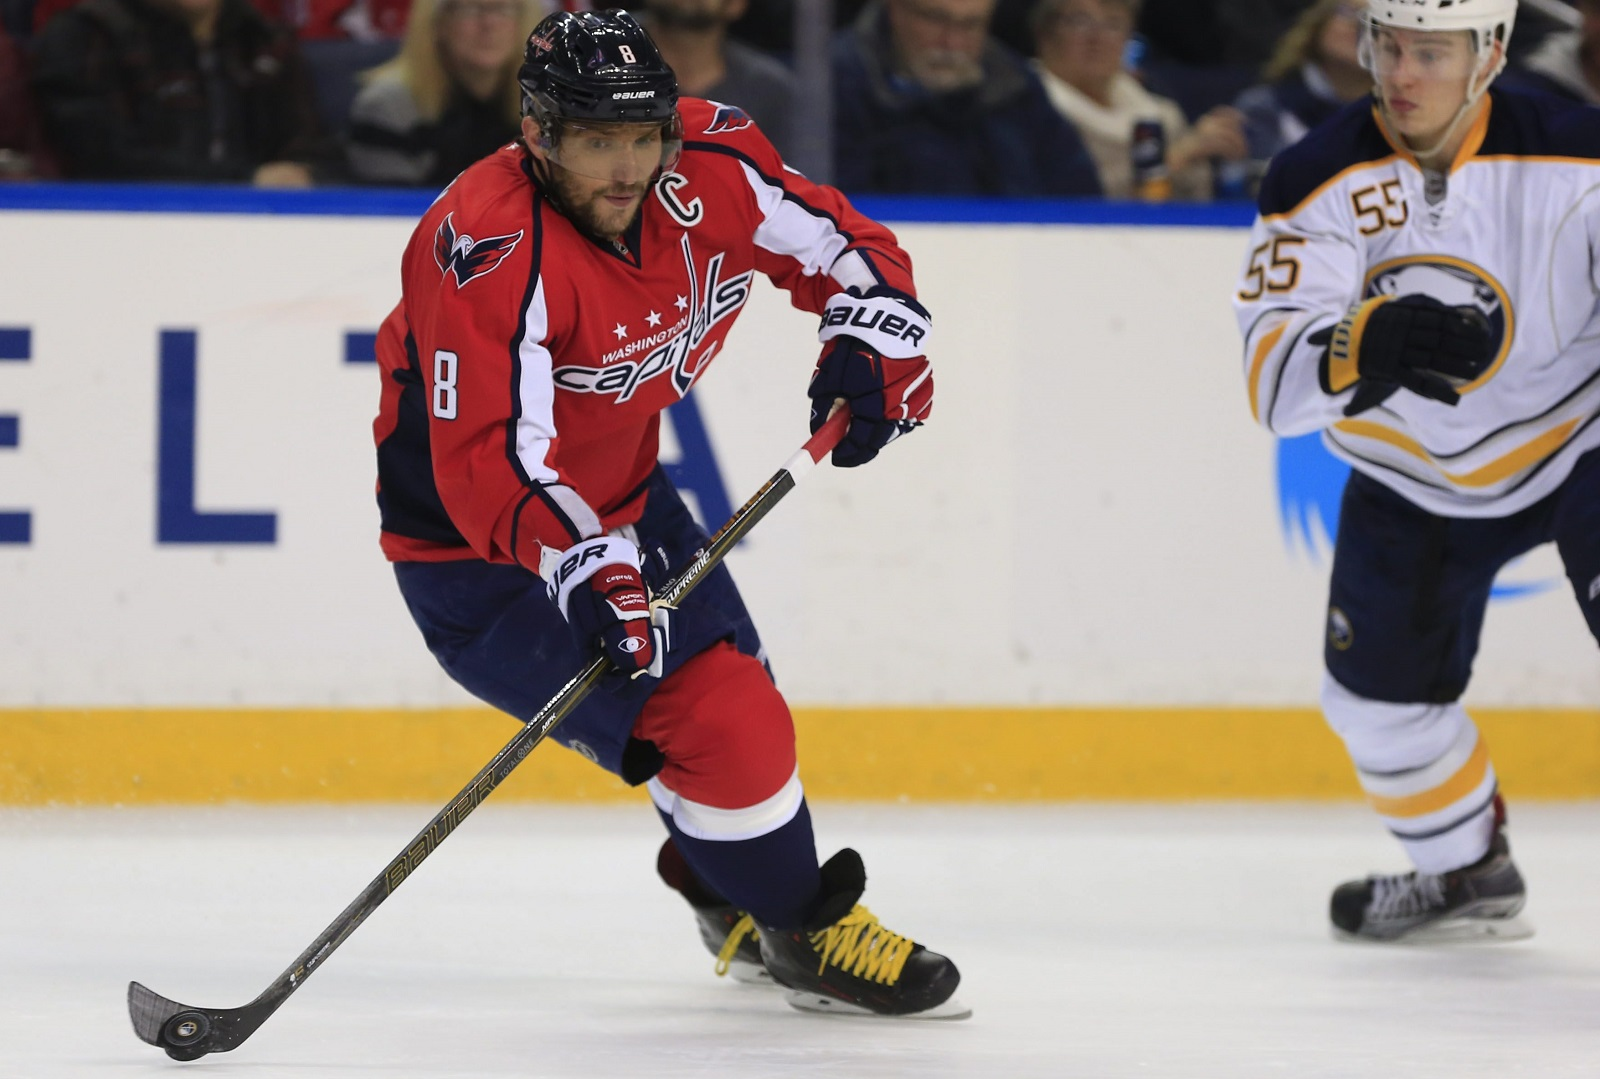 The Capitals' Alex Ovechkin had a strong Game 5, which could spur him on to a big finish to the series. (Harry Scull Jr./Buffalo News)